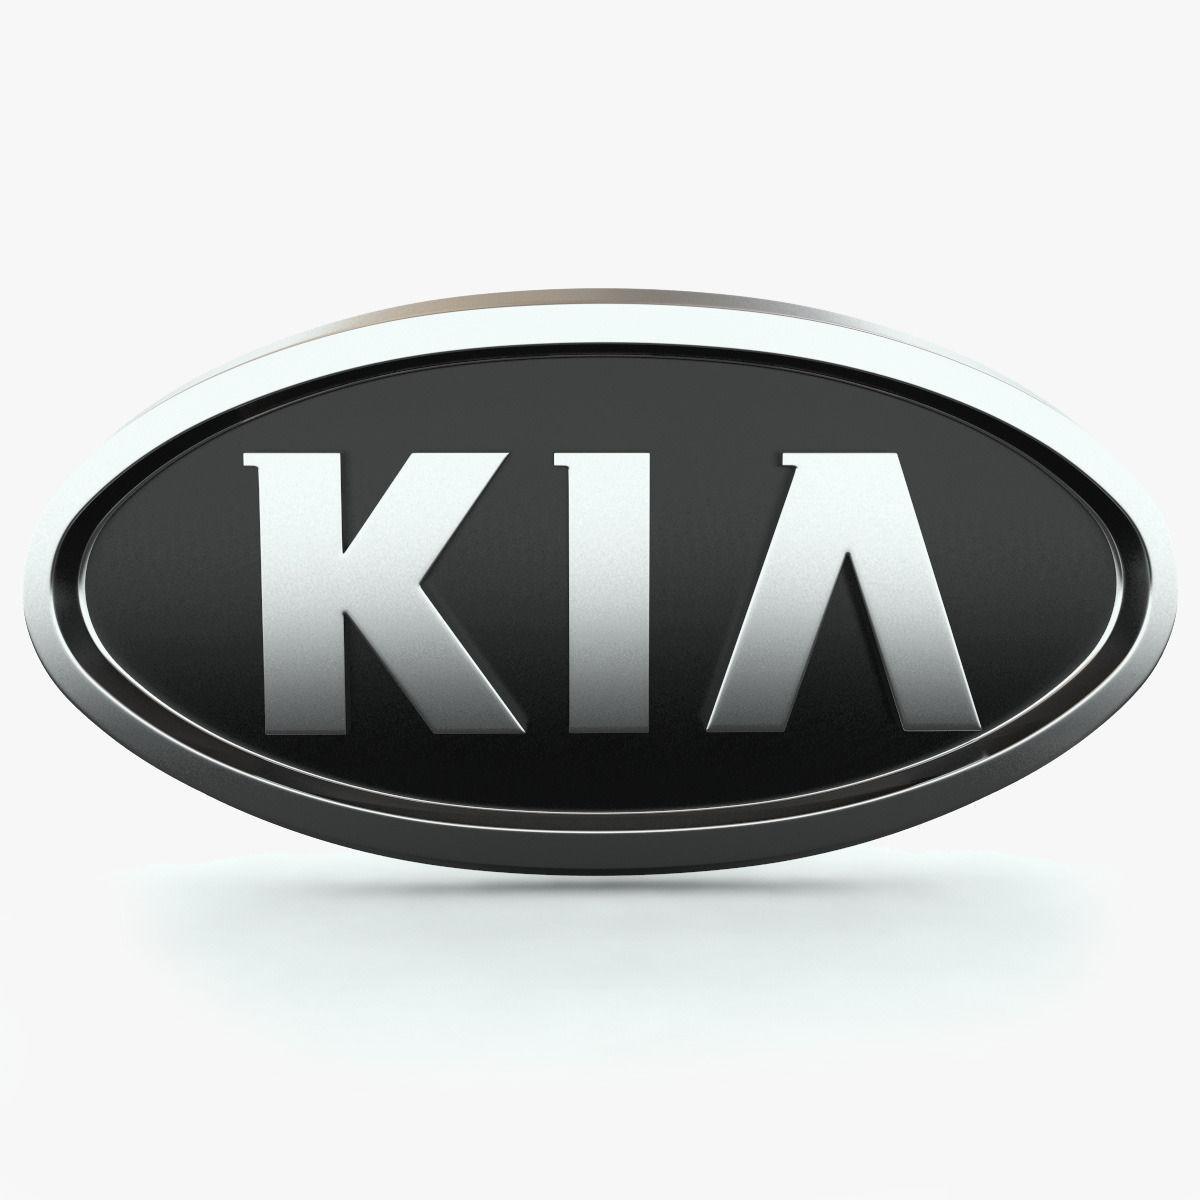 Kia Logo 4 on car kitchen